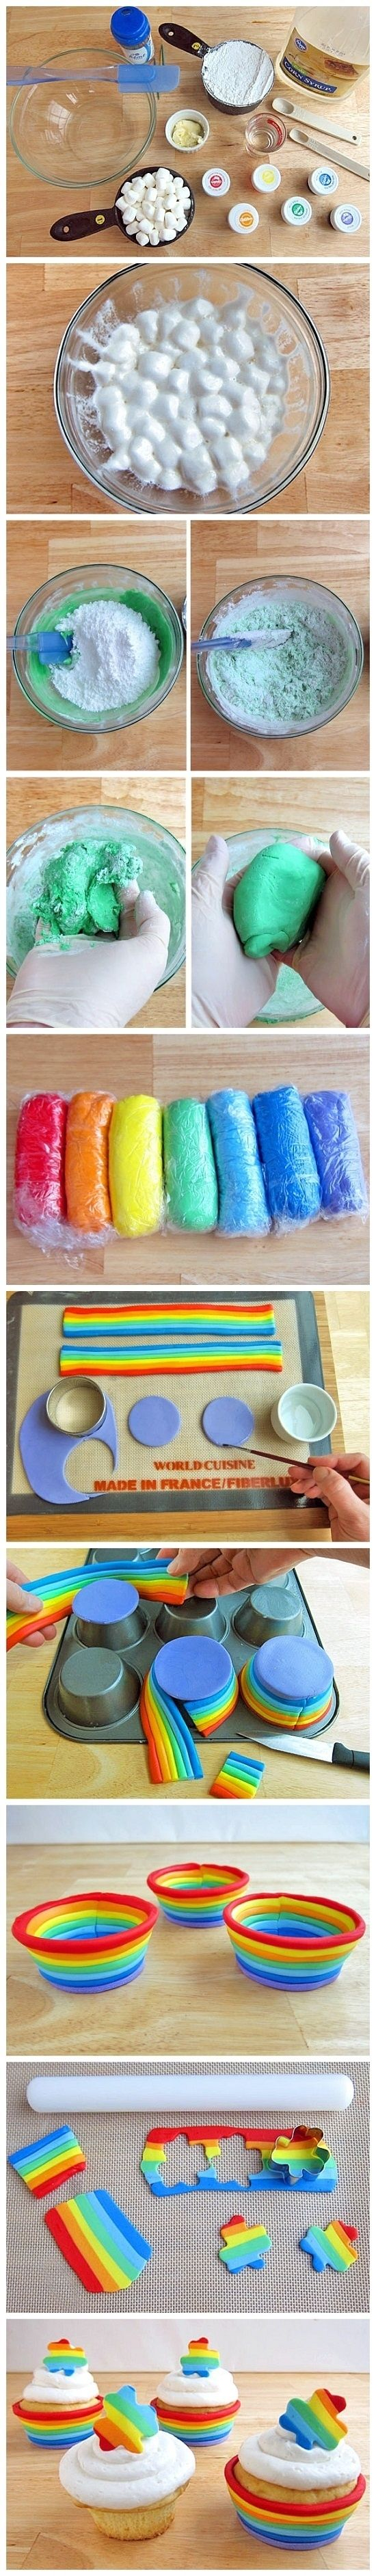 DIY Edible cupcake wrappers recipe craft crafts craft ideas easy crafts diy ideas fun crafts easy diy kids crafts food crafts diy craft diy cupcakes kids craft ideas craft recipes